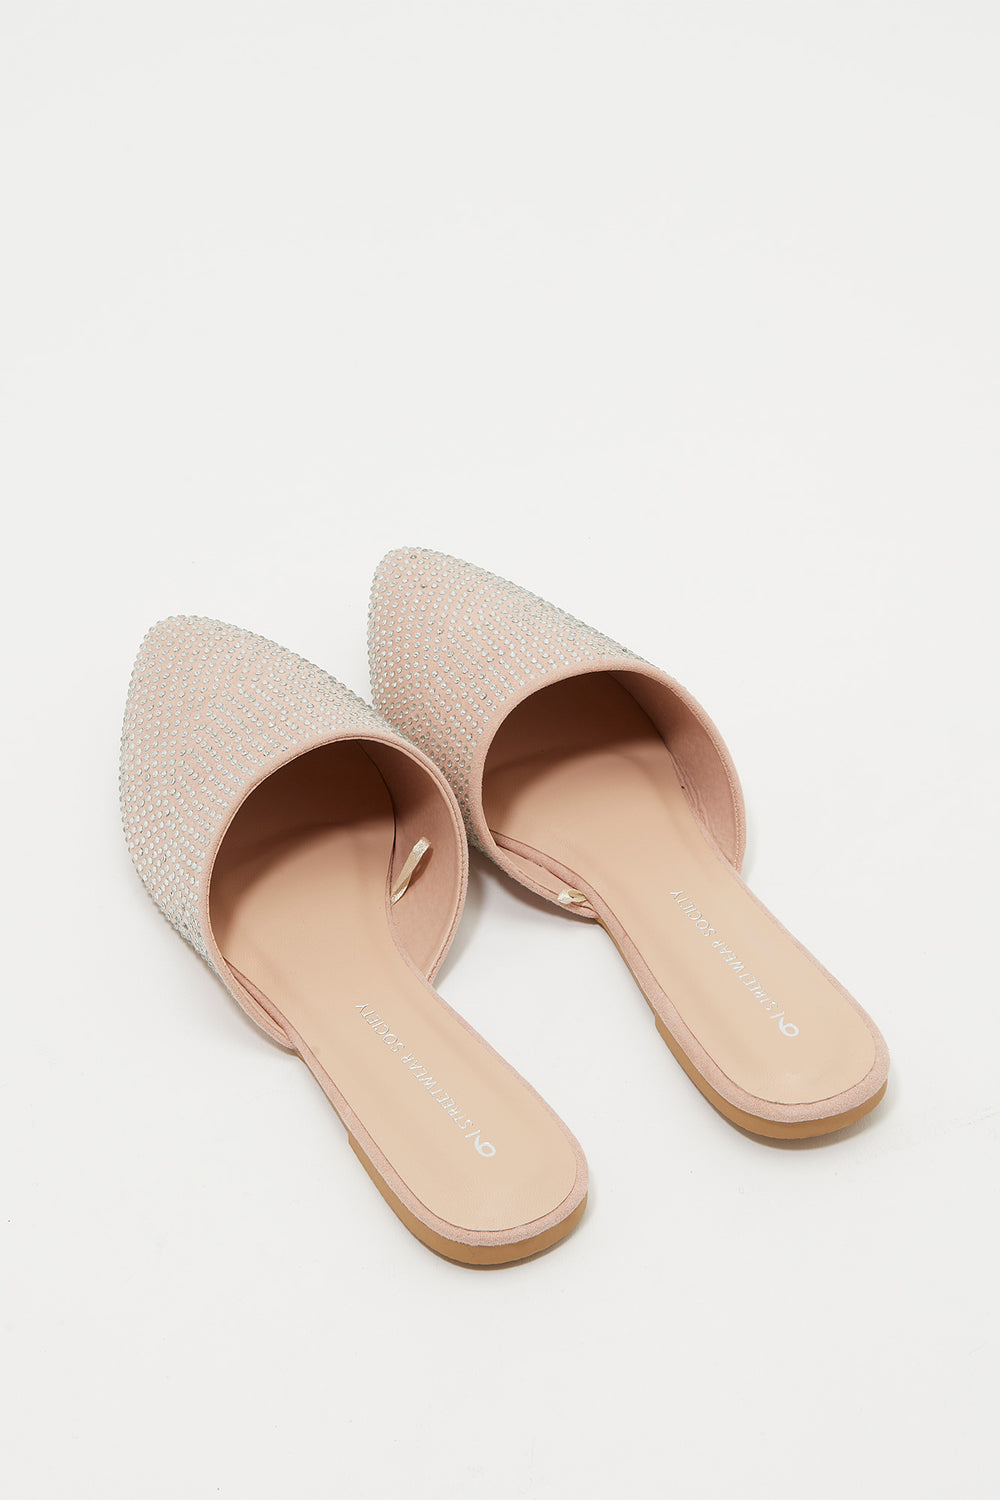 Pointed Rhinestone Mule Flat Light Pink